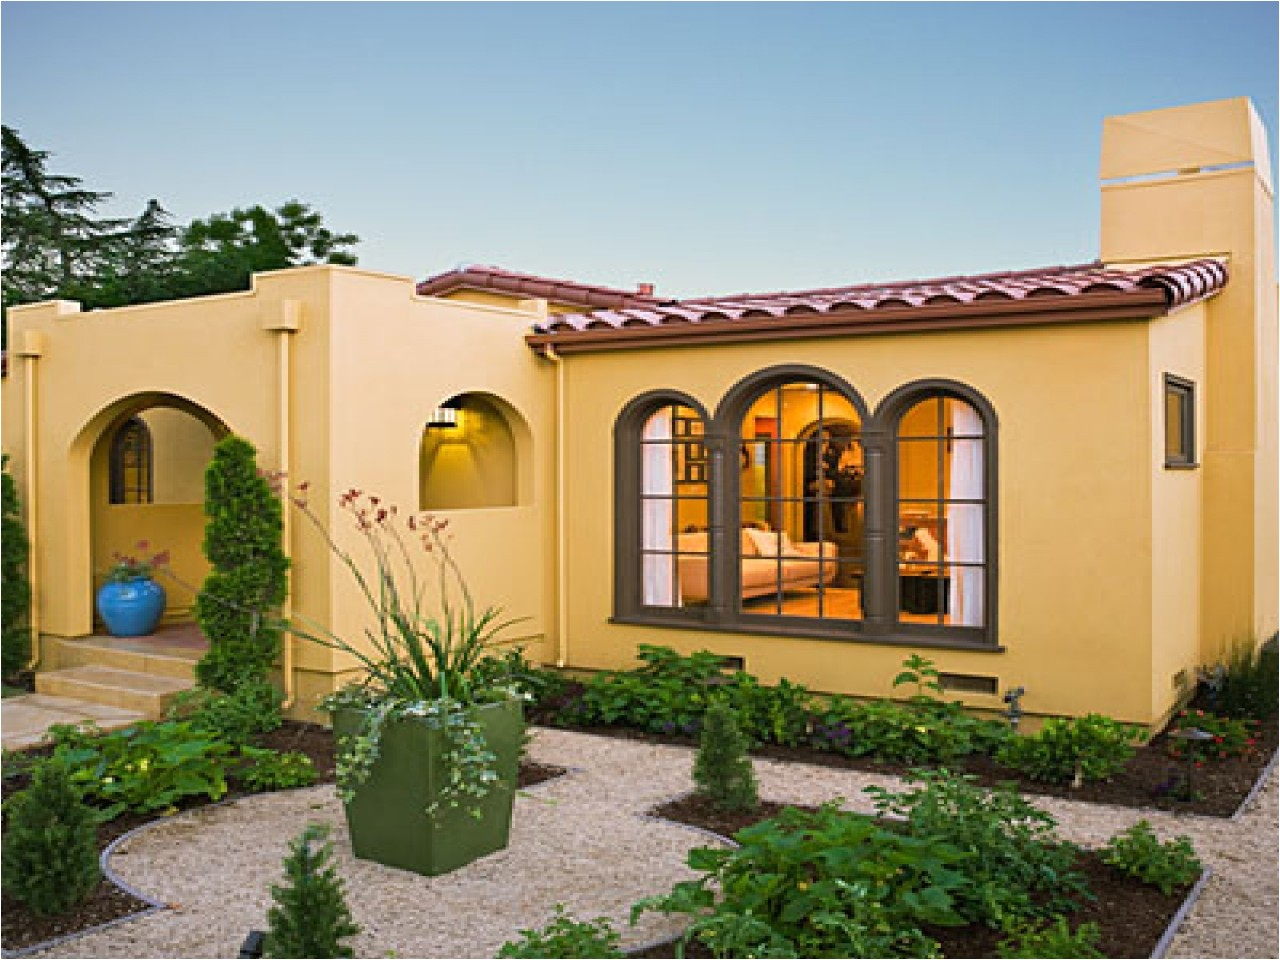 ae2d241d6b82dbe2 small spanish style homes interior small spanish style house plans